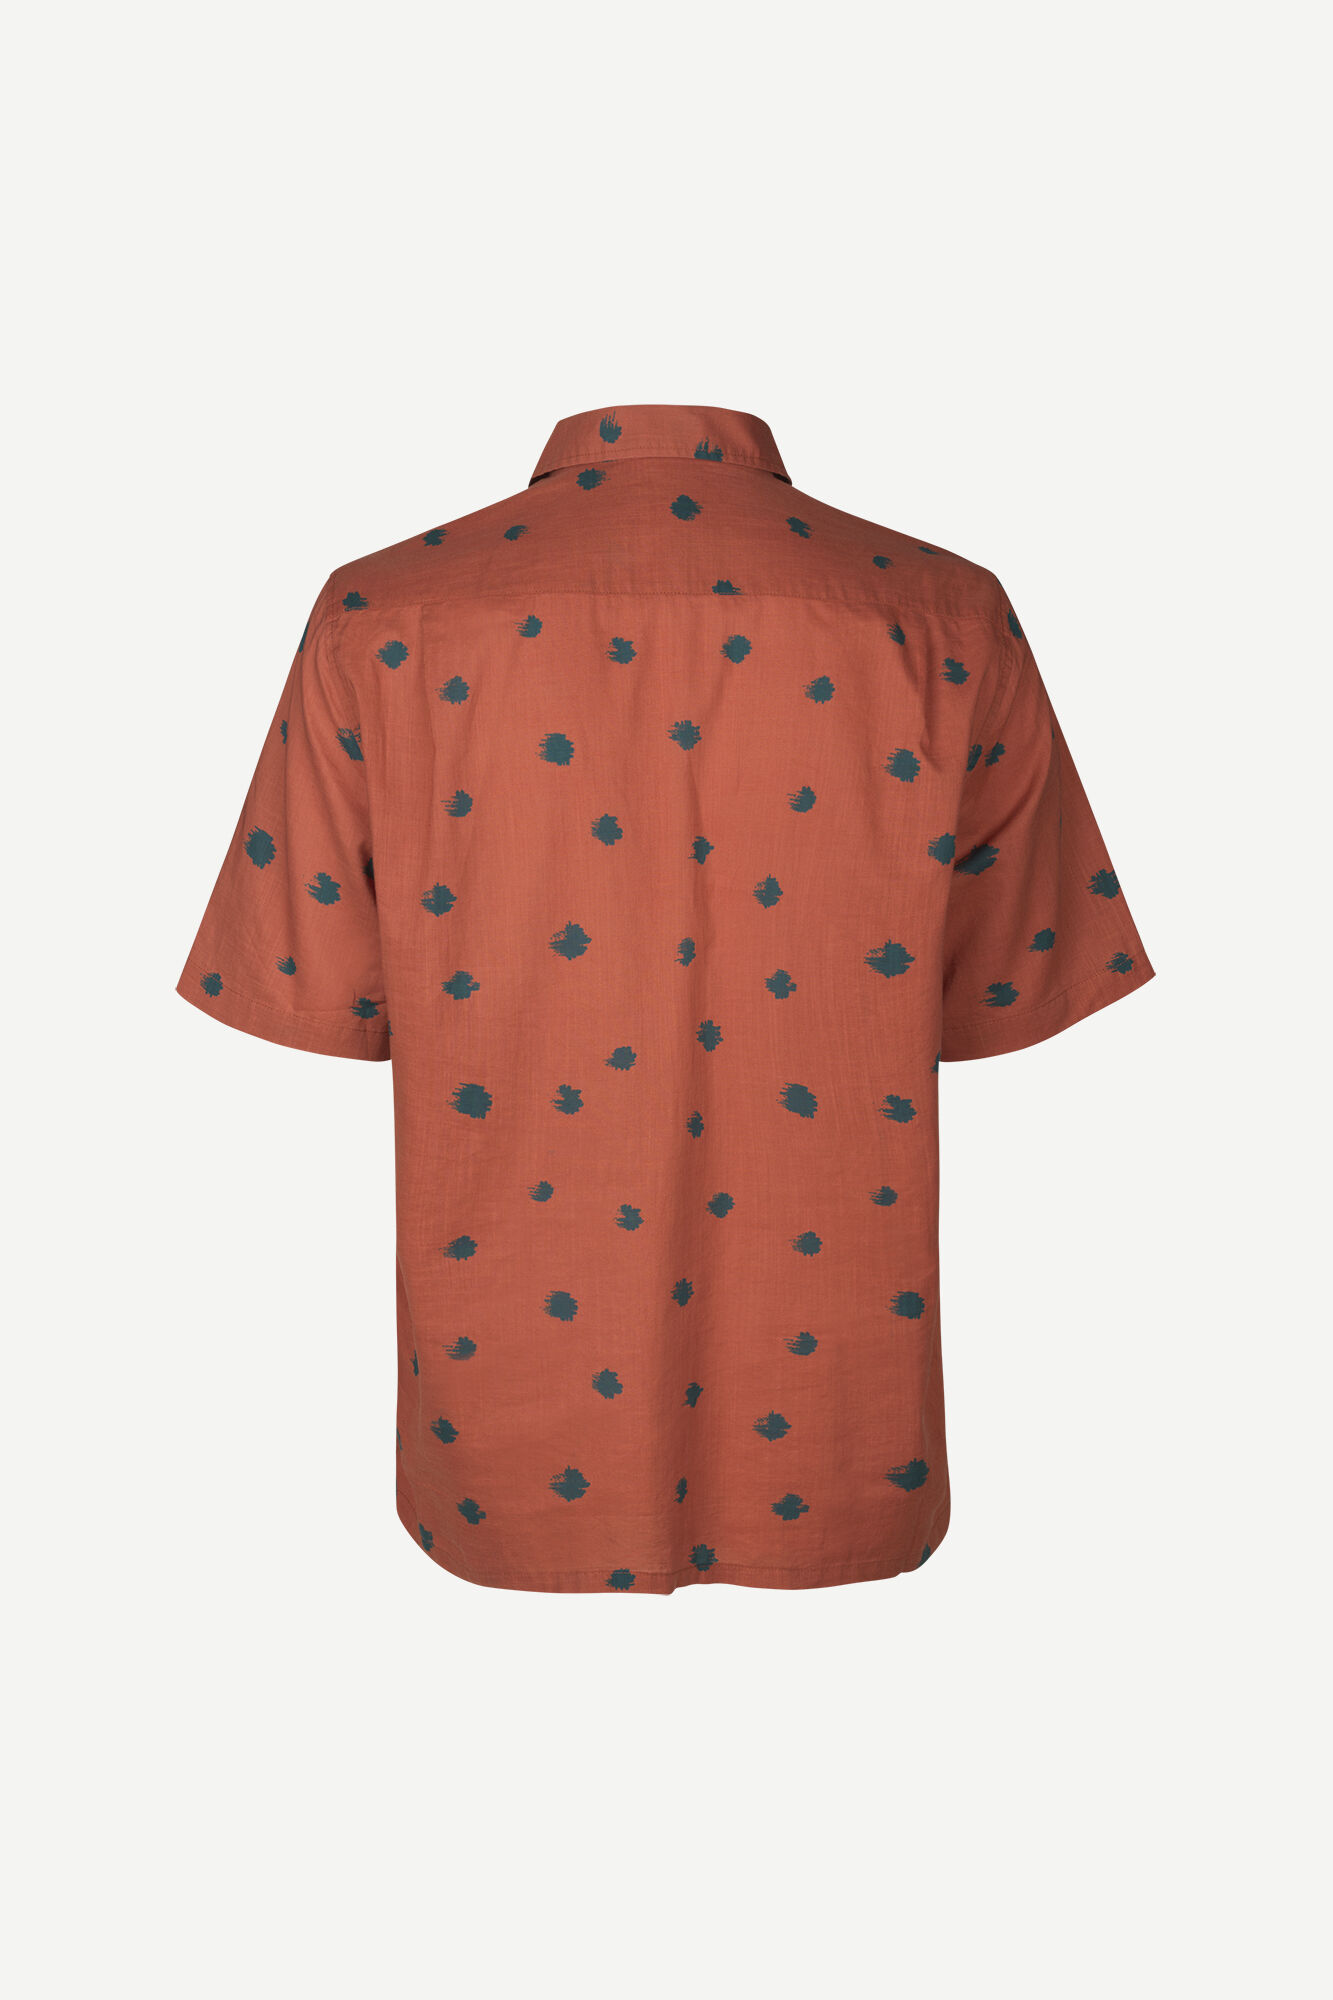 Avan JX shirt aop 11515, THE DOT